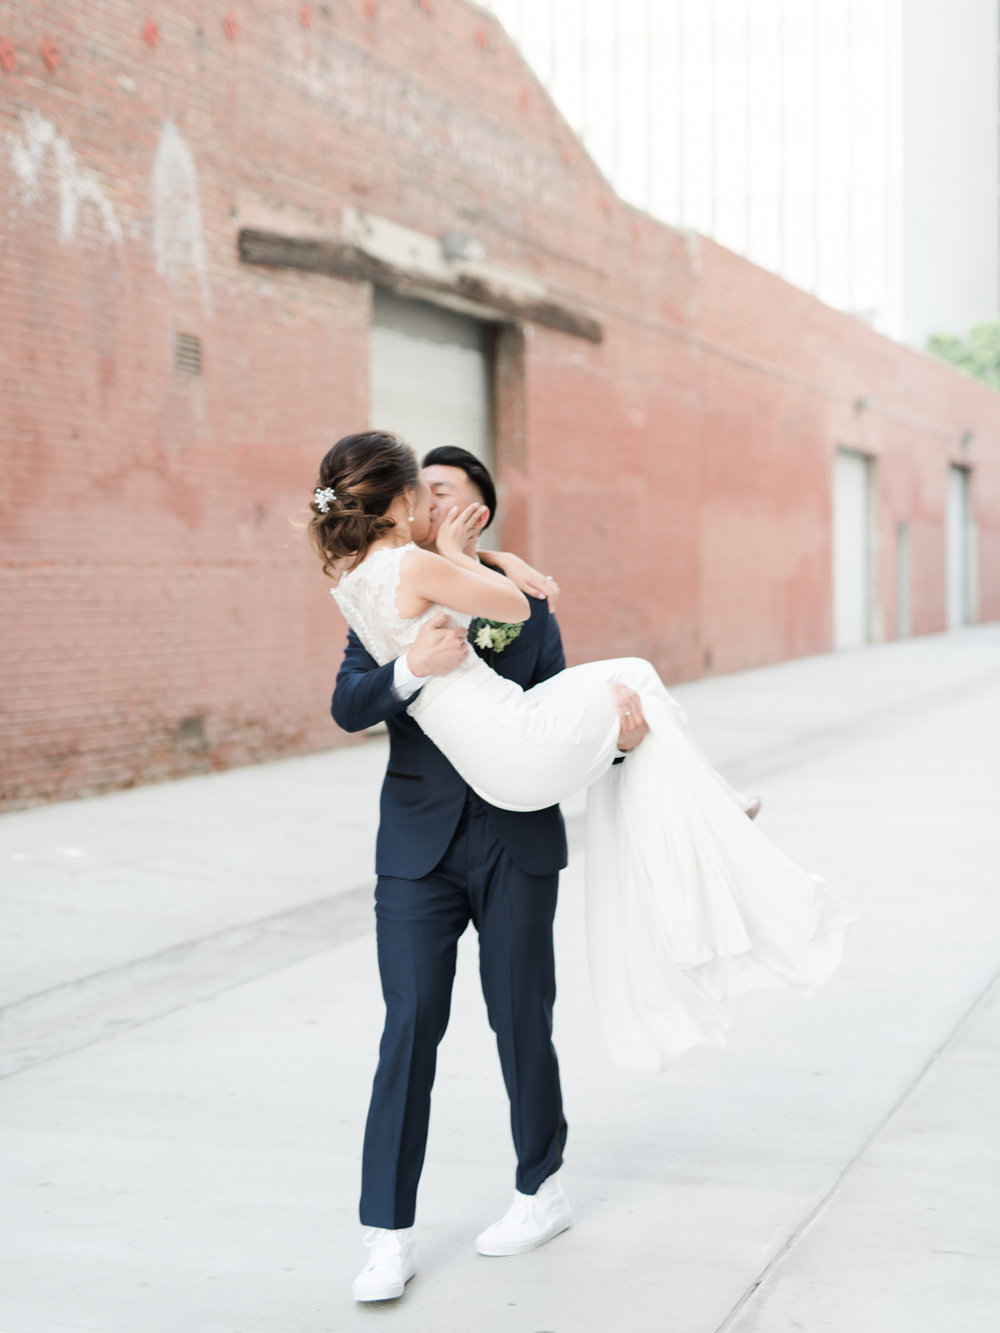 Modern_Wedding_HNYPT_Honeypot_LA_Photographer_Los_Angeles-40.jpg